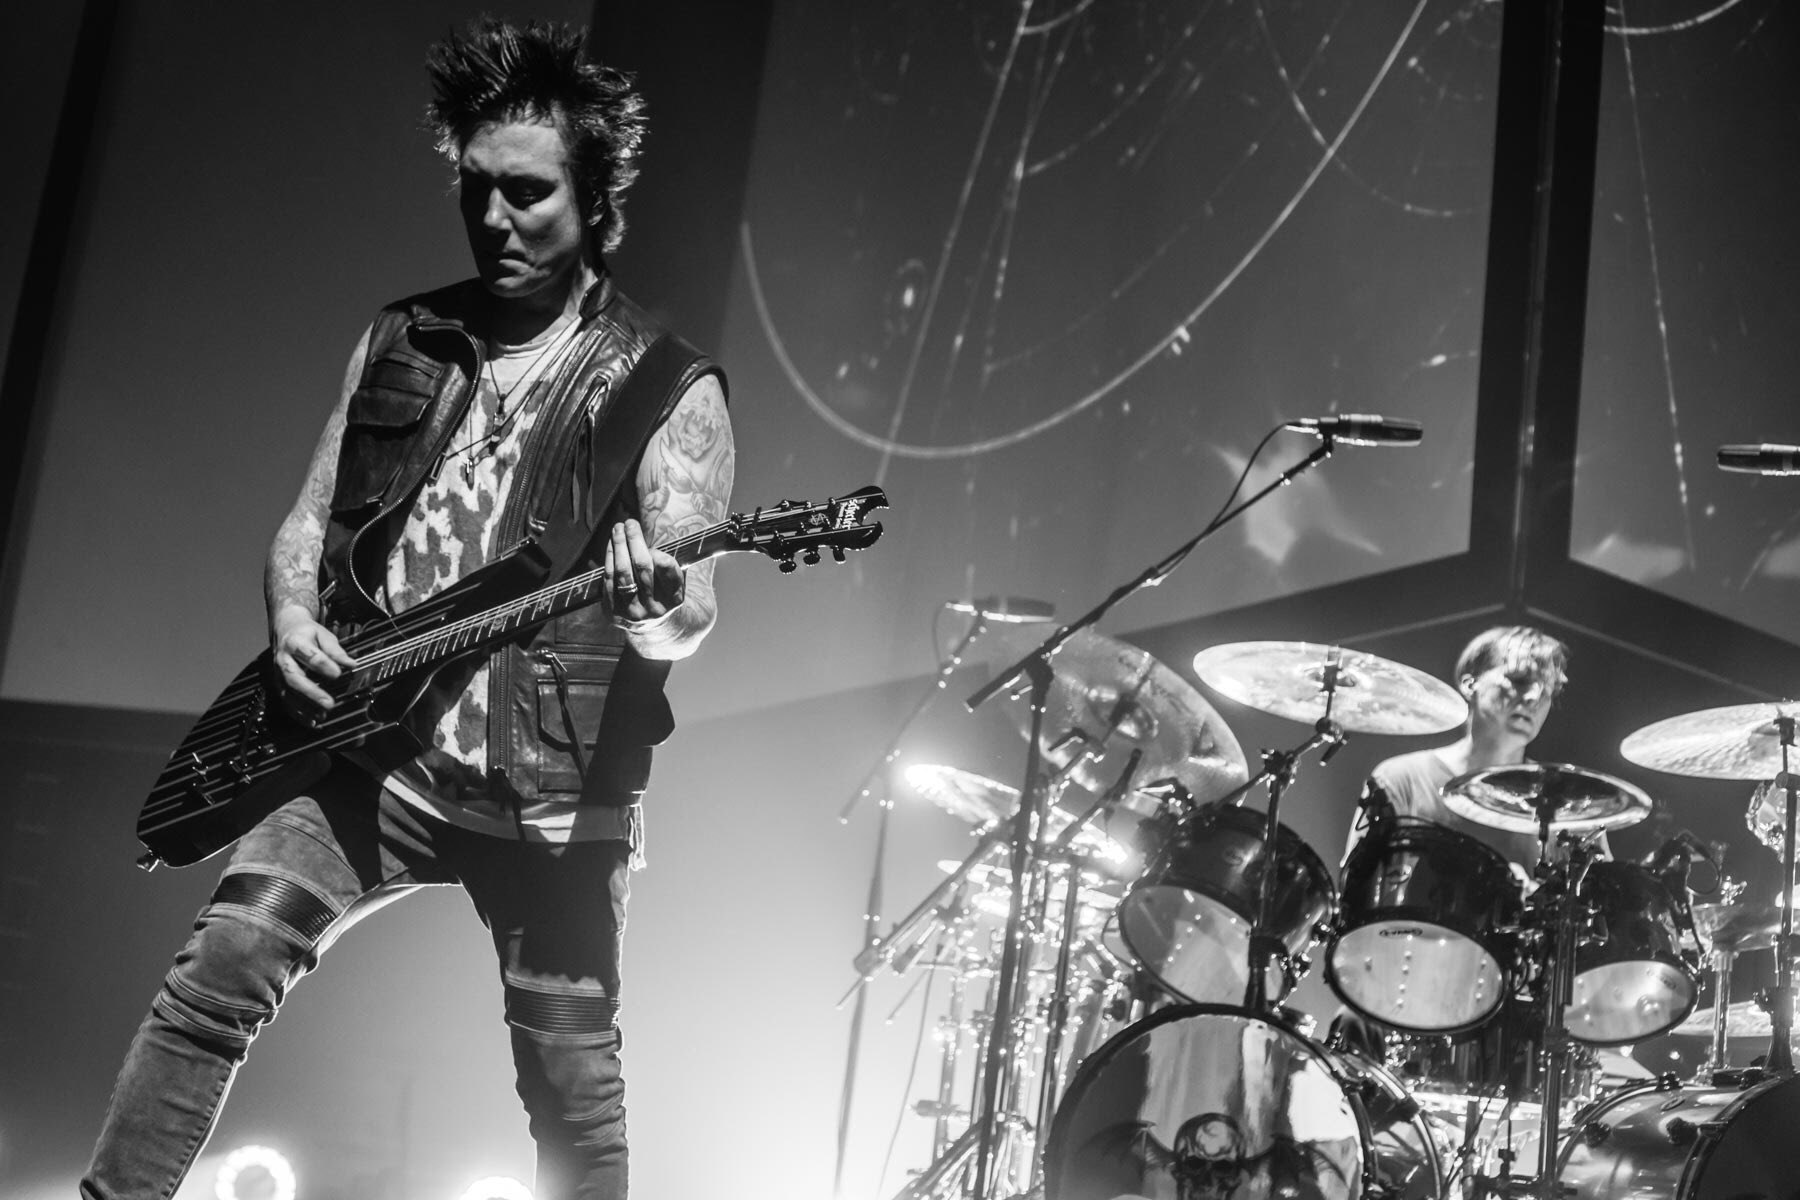 Planets. Zurich, Switzerland ���� #thestageworldtour #avengedsevenfold ��: @rafacore https://t.co/rKCcTseEMn